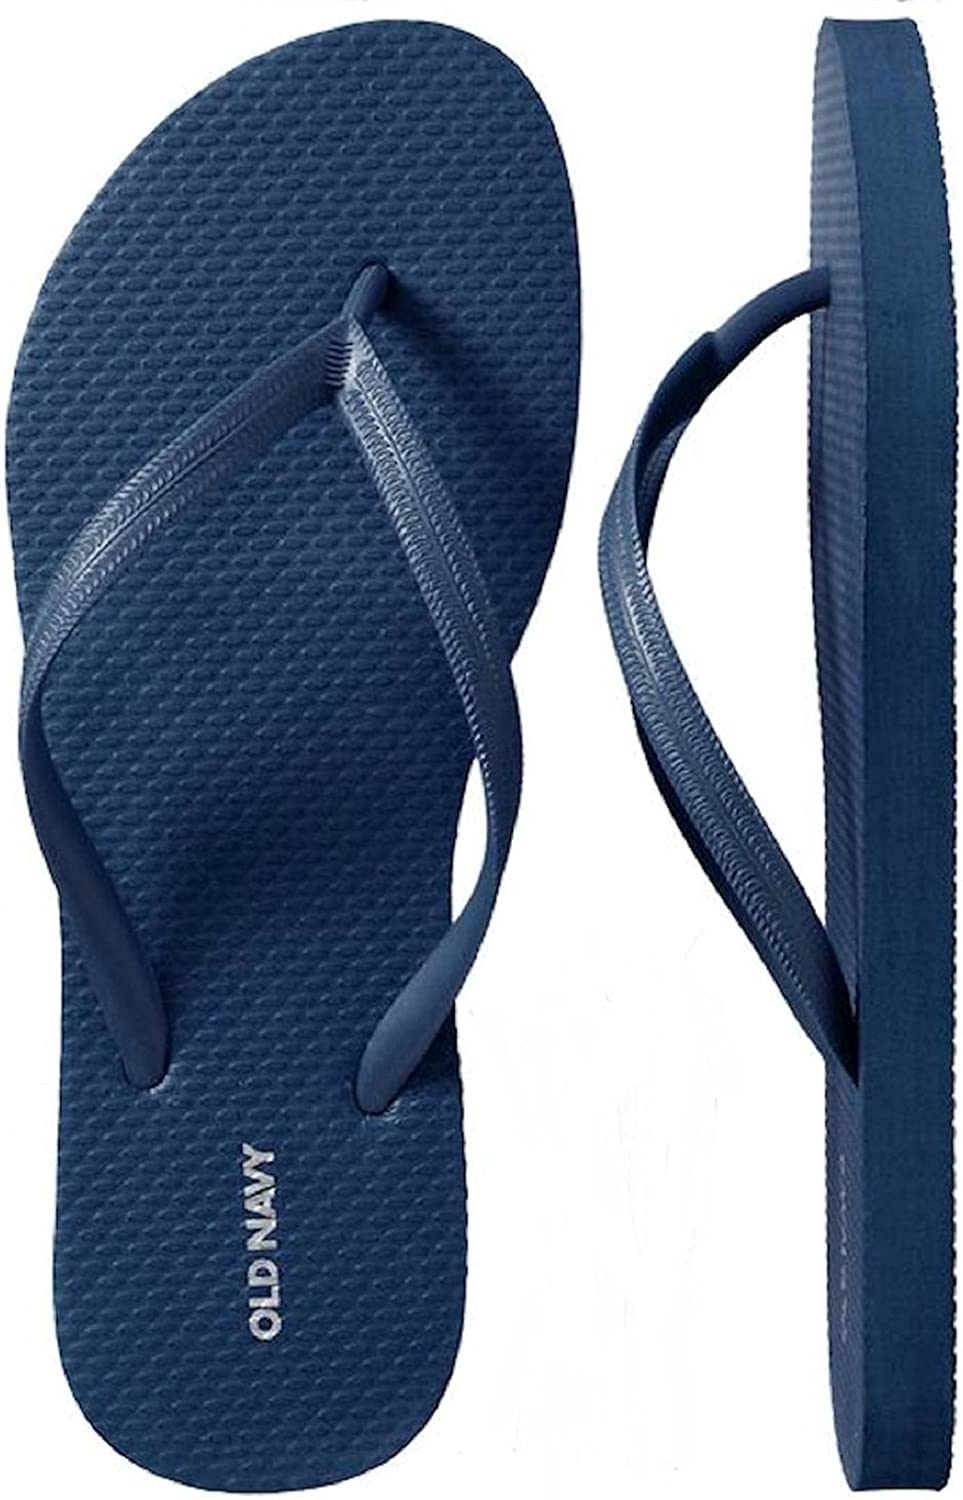 Old Navy Classic Flip Flops for Woman